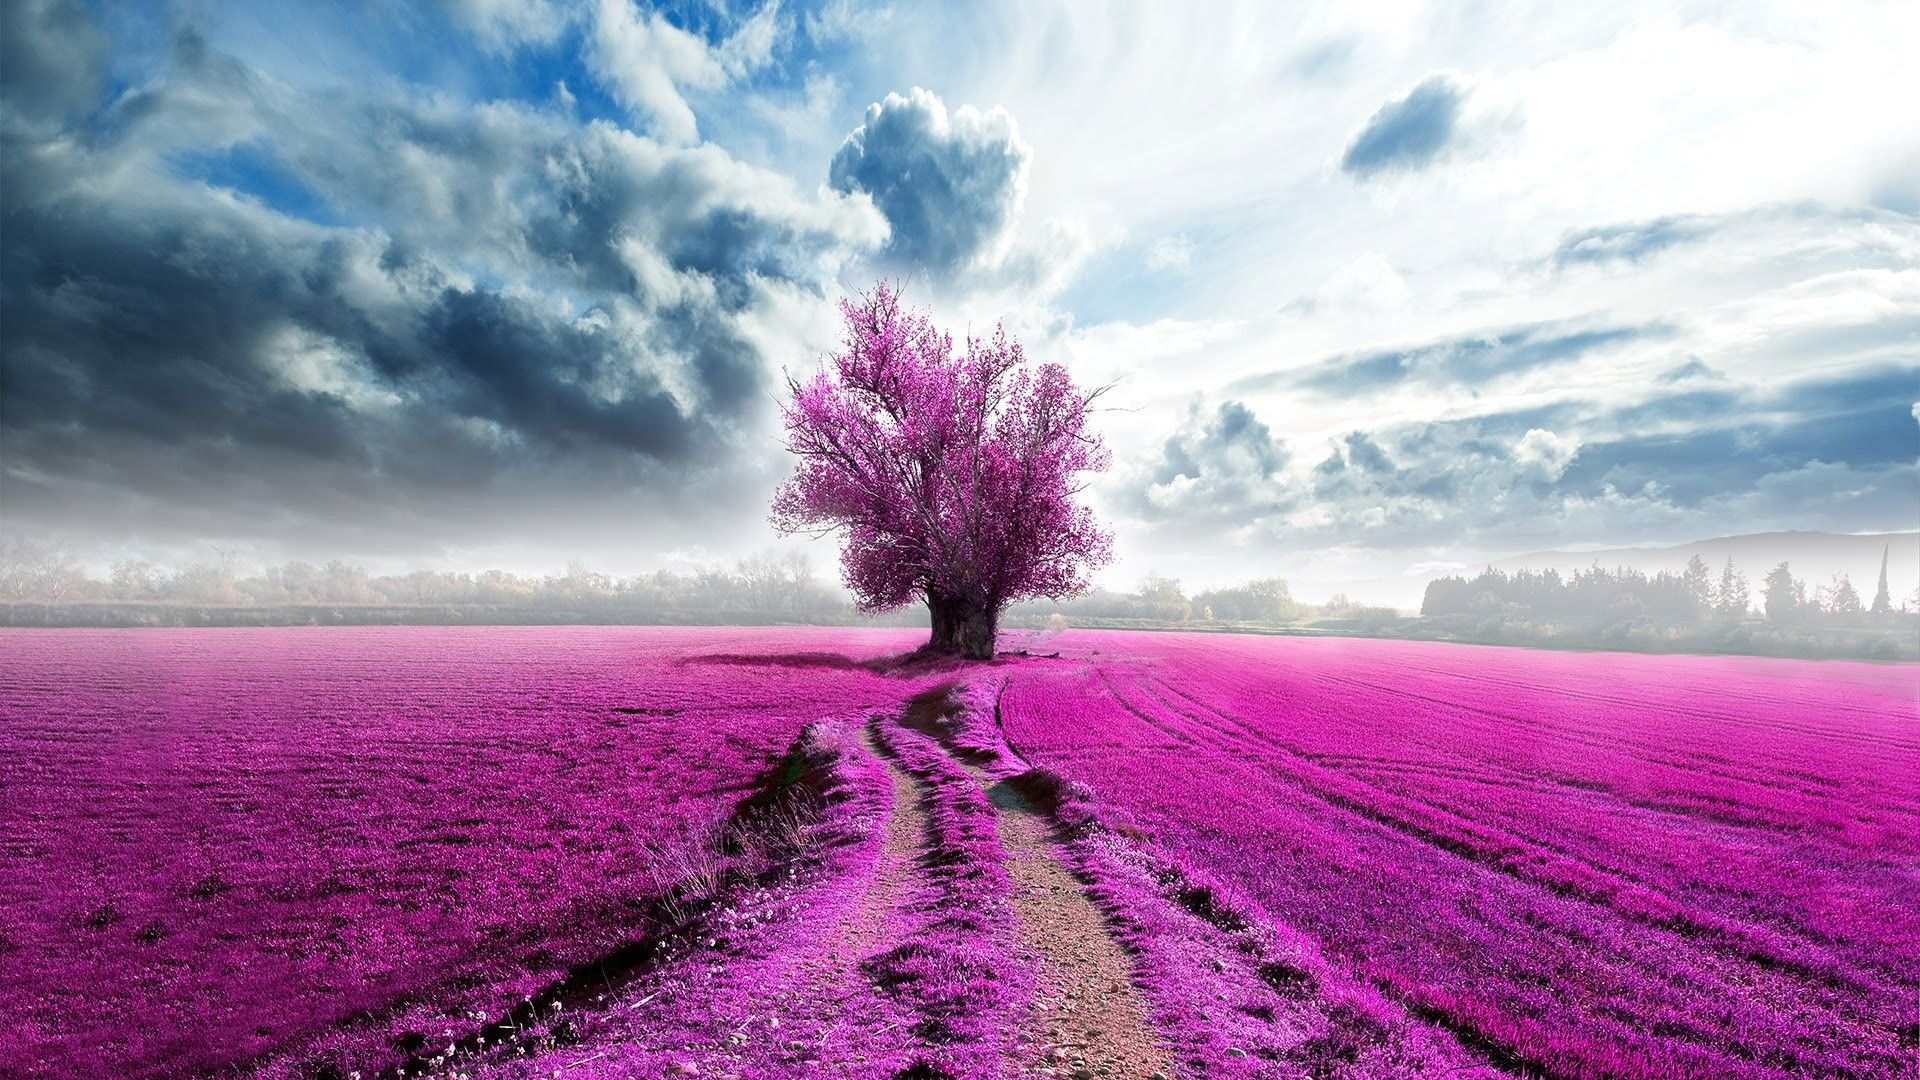 Pink Landscape Wallpapers Top Free Pink Landscape Backgrounds Wallpaperaccess